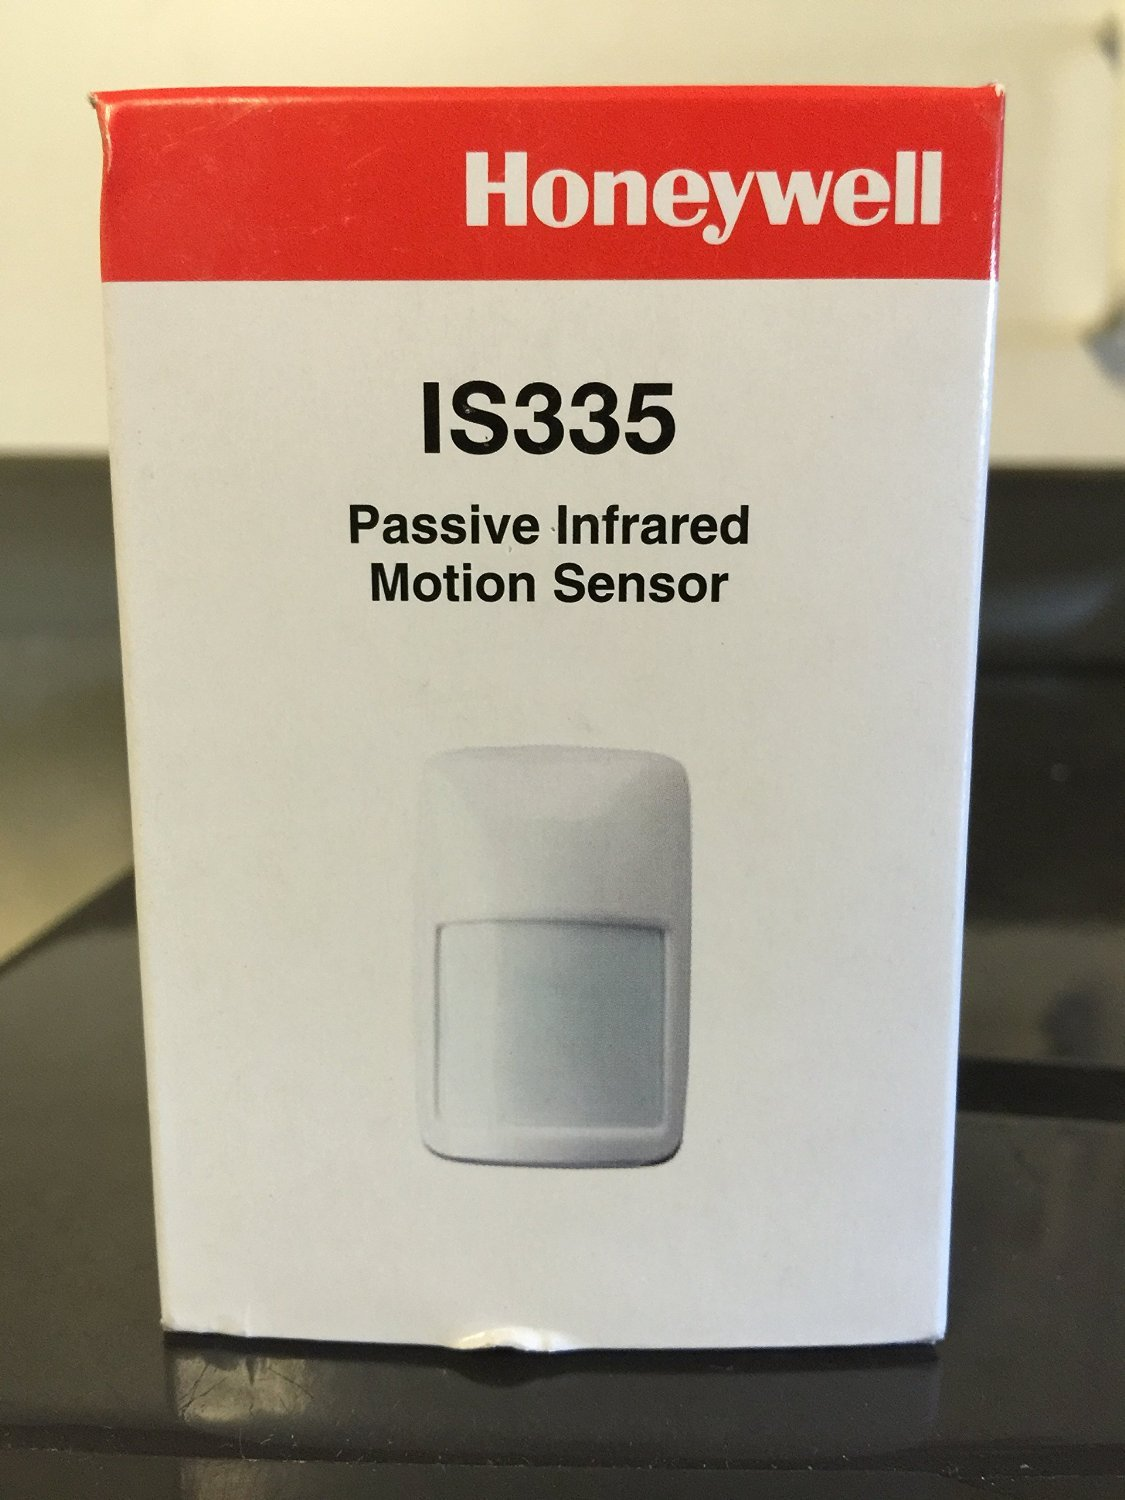 Amazon is335 wired pir motion detector 40 x 56 by honeywell amazon is335 wired pir motion detector 40 x 56 by honeywell 2 pack camera photo asfbconference2016 Image collections